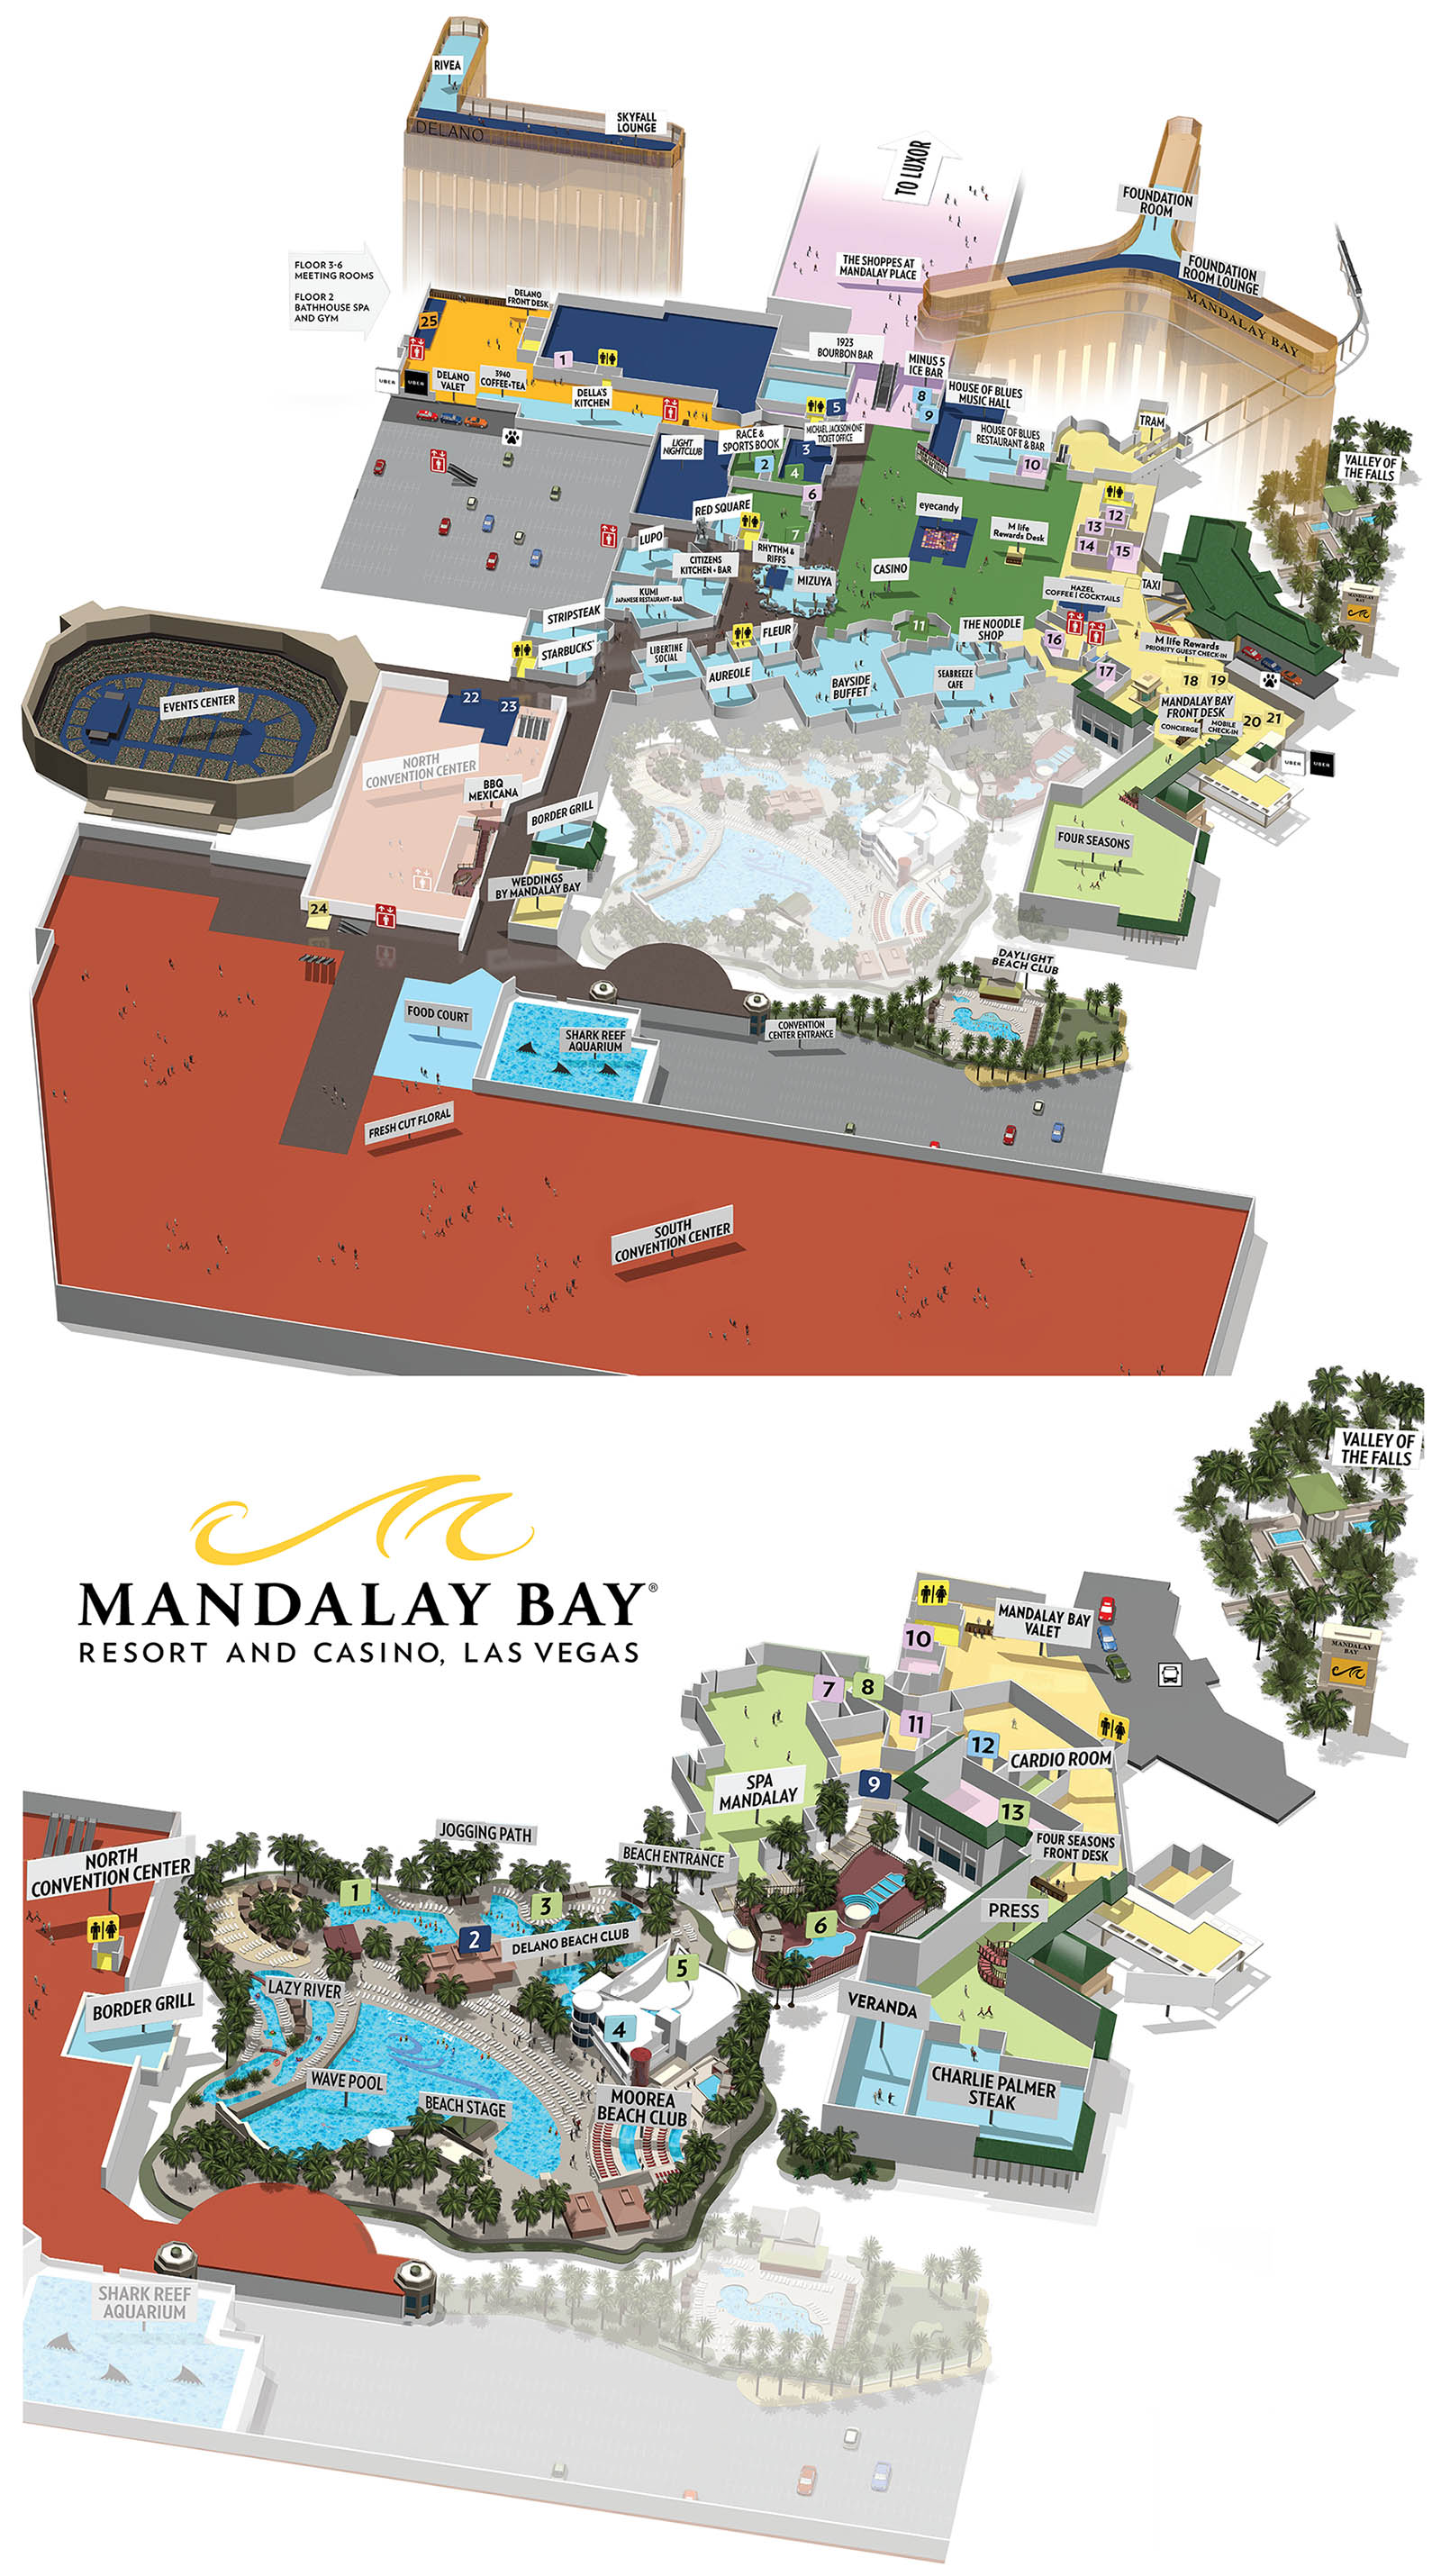 Mandalay Bay Map Mandalay Bay Casino Property Map & Floor Plans   Las Vegas Mandalay Bay Map